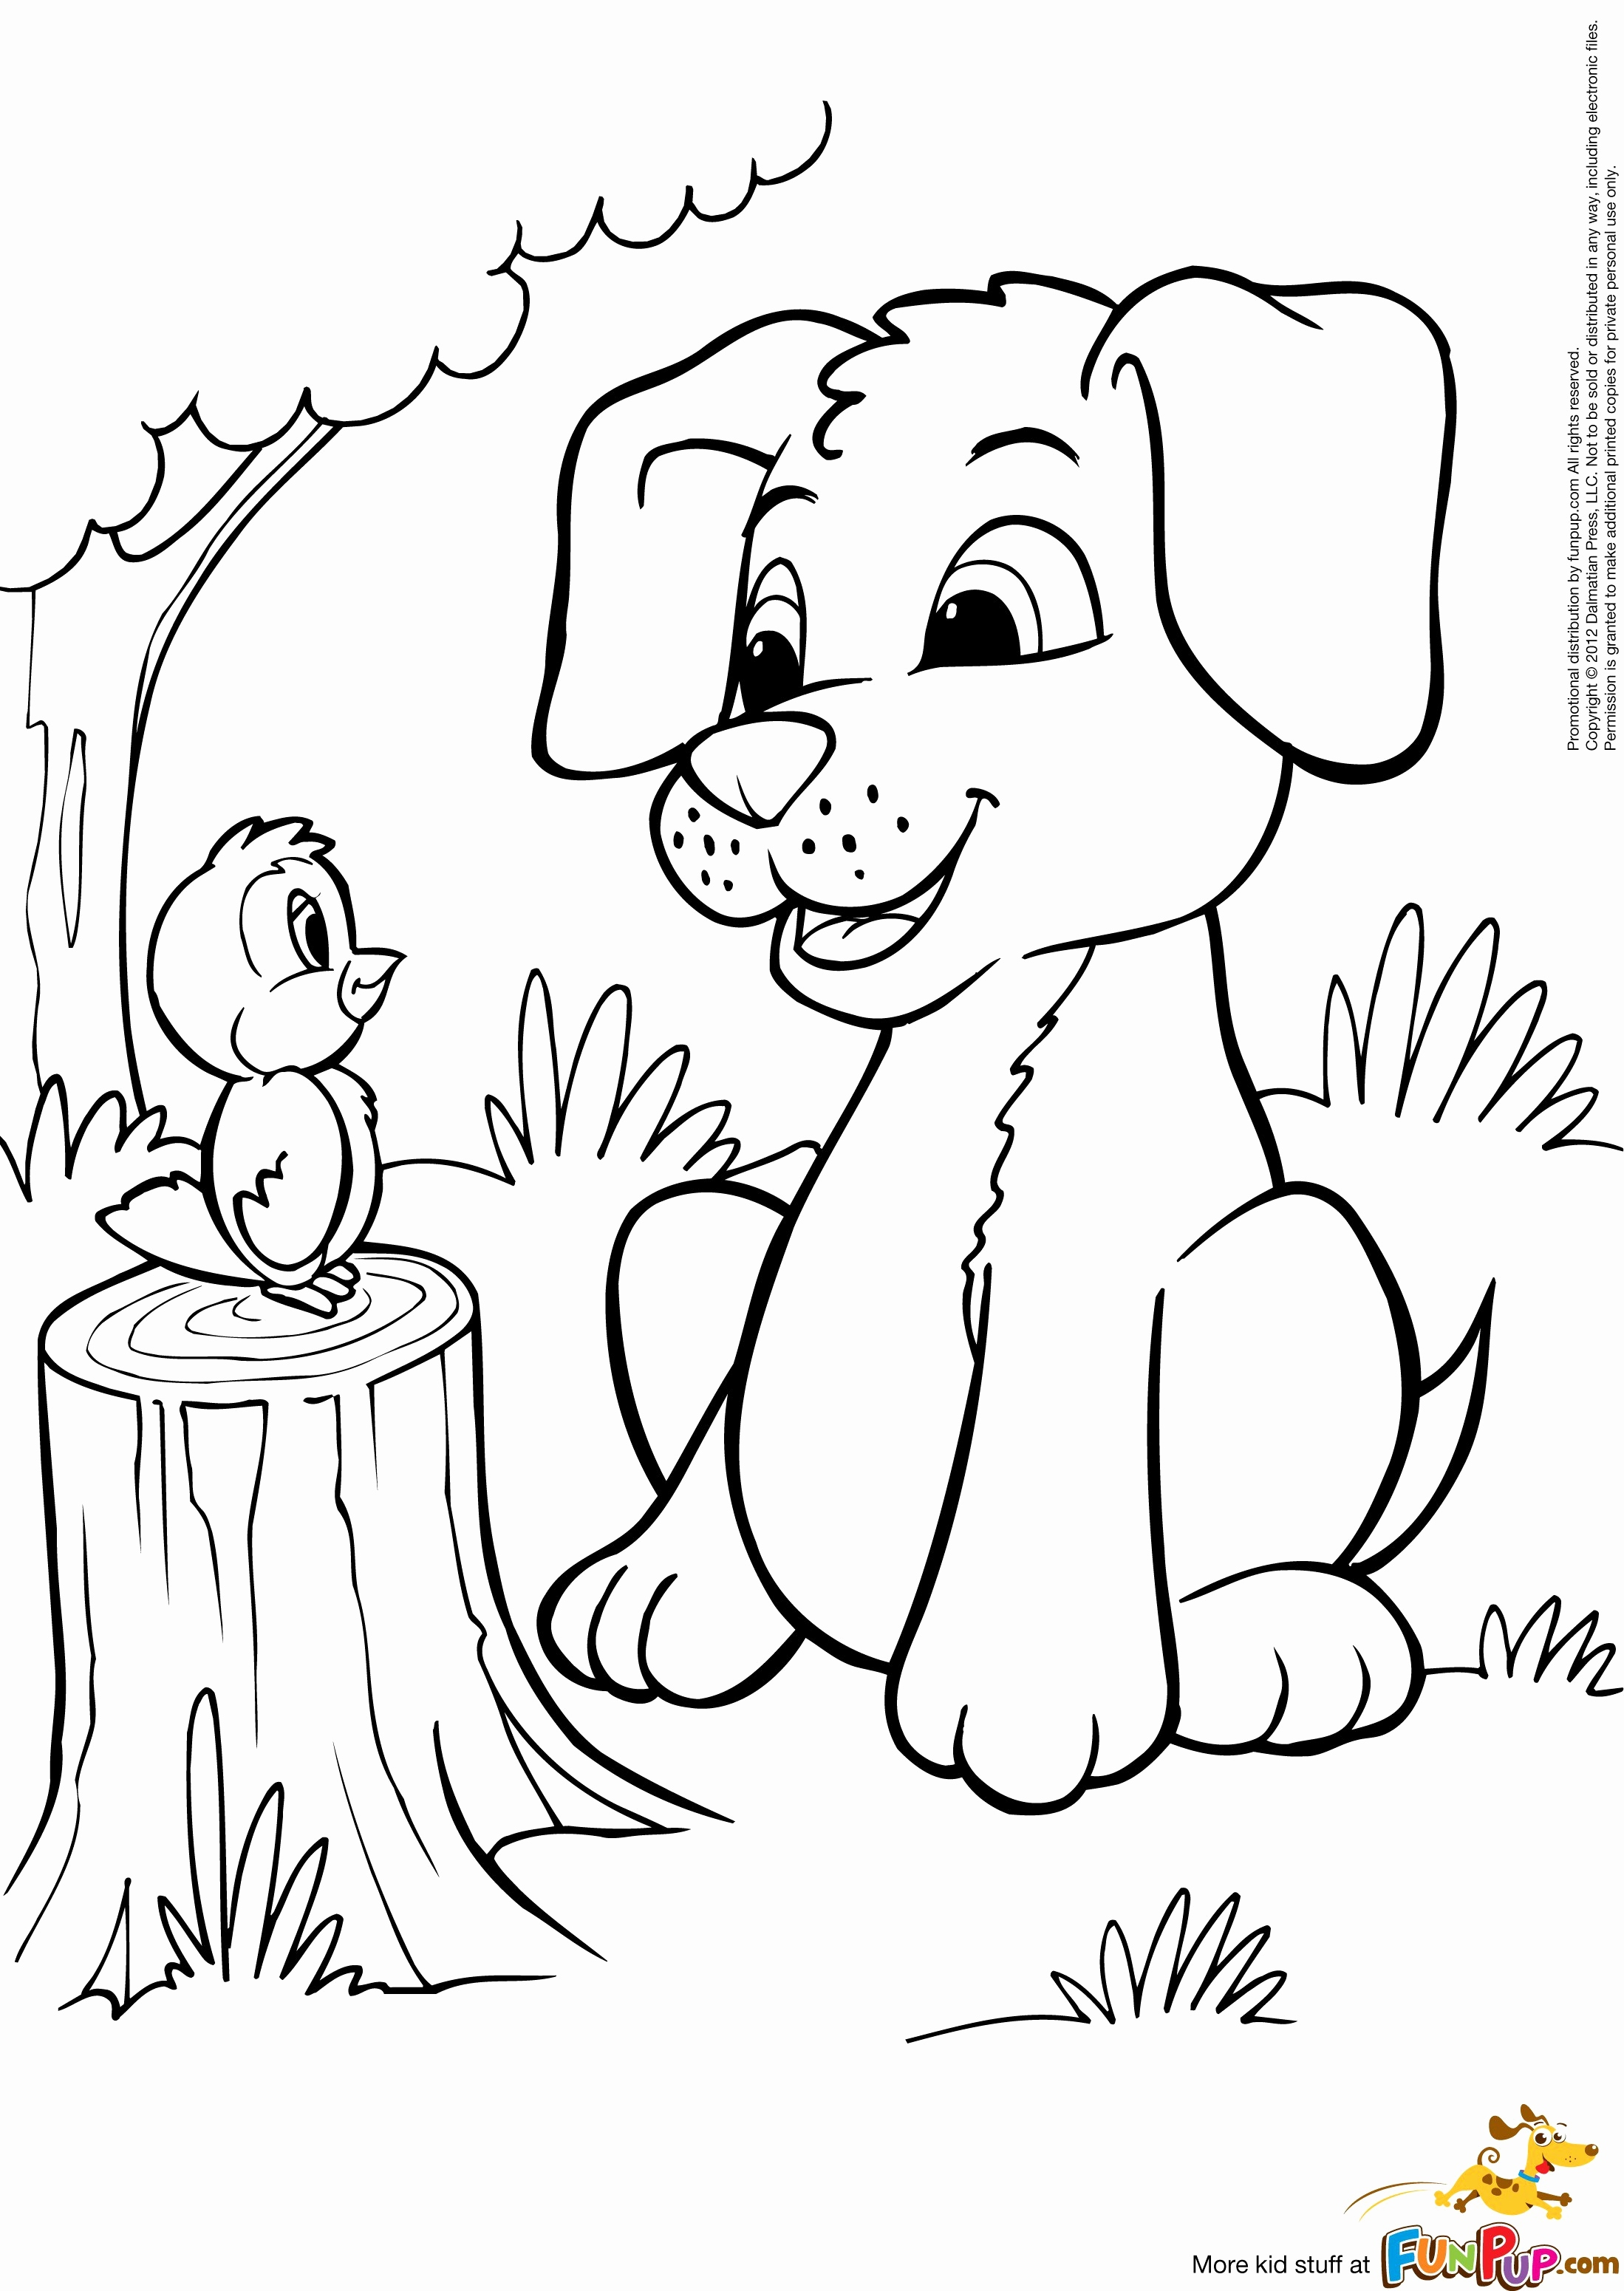 husky face coloring pages how to draw huskies draw a husky step by step pets coloring husky pages face